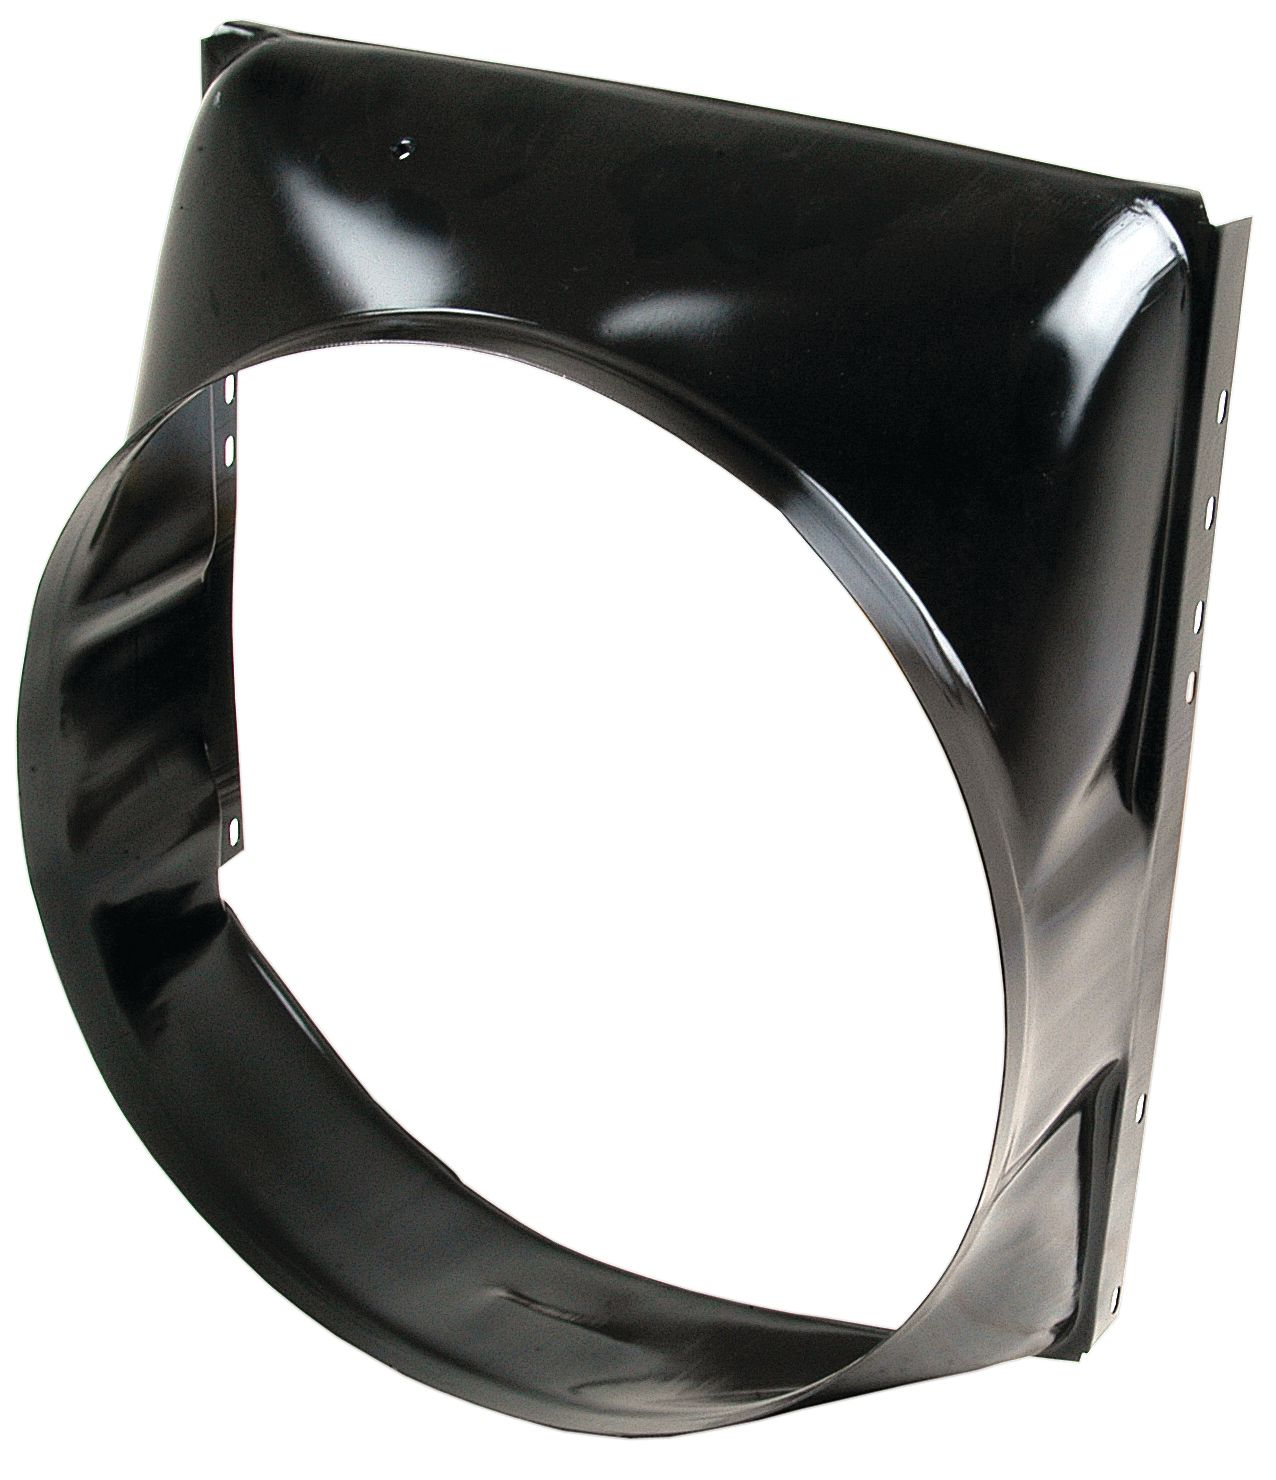 PERKINS RADIATOR COWL 42579